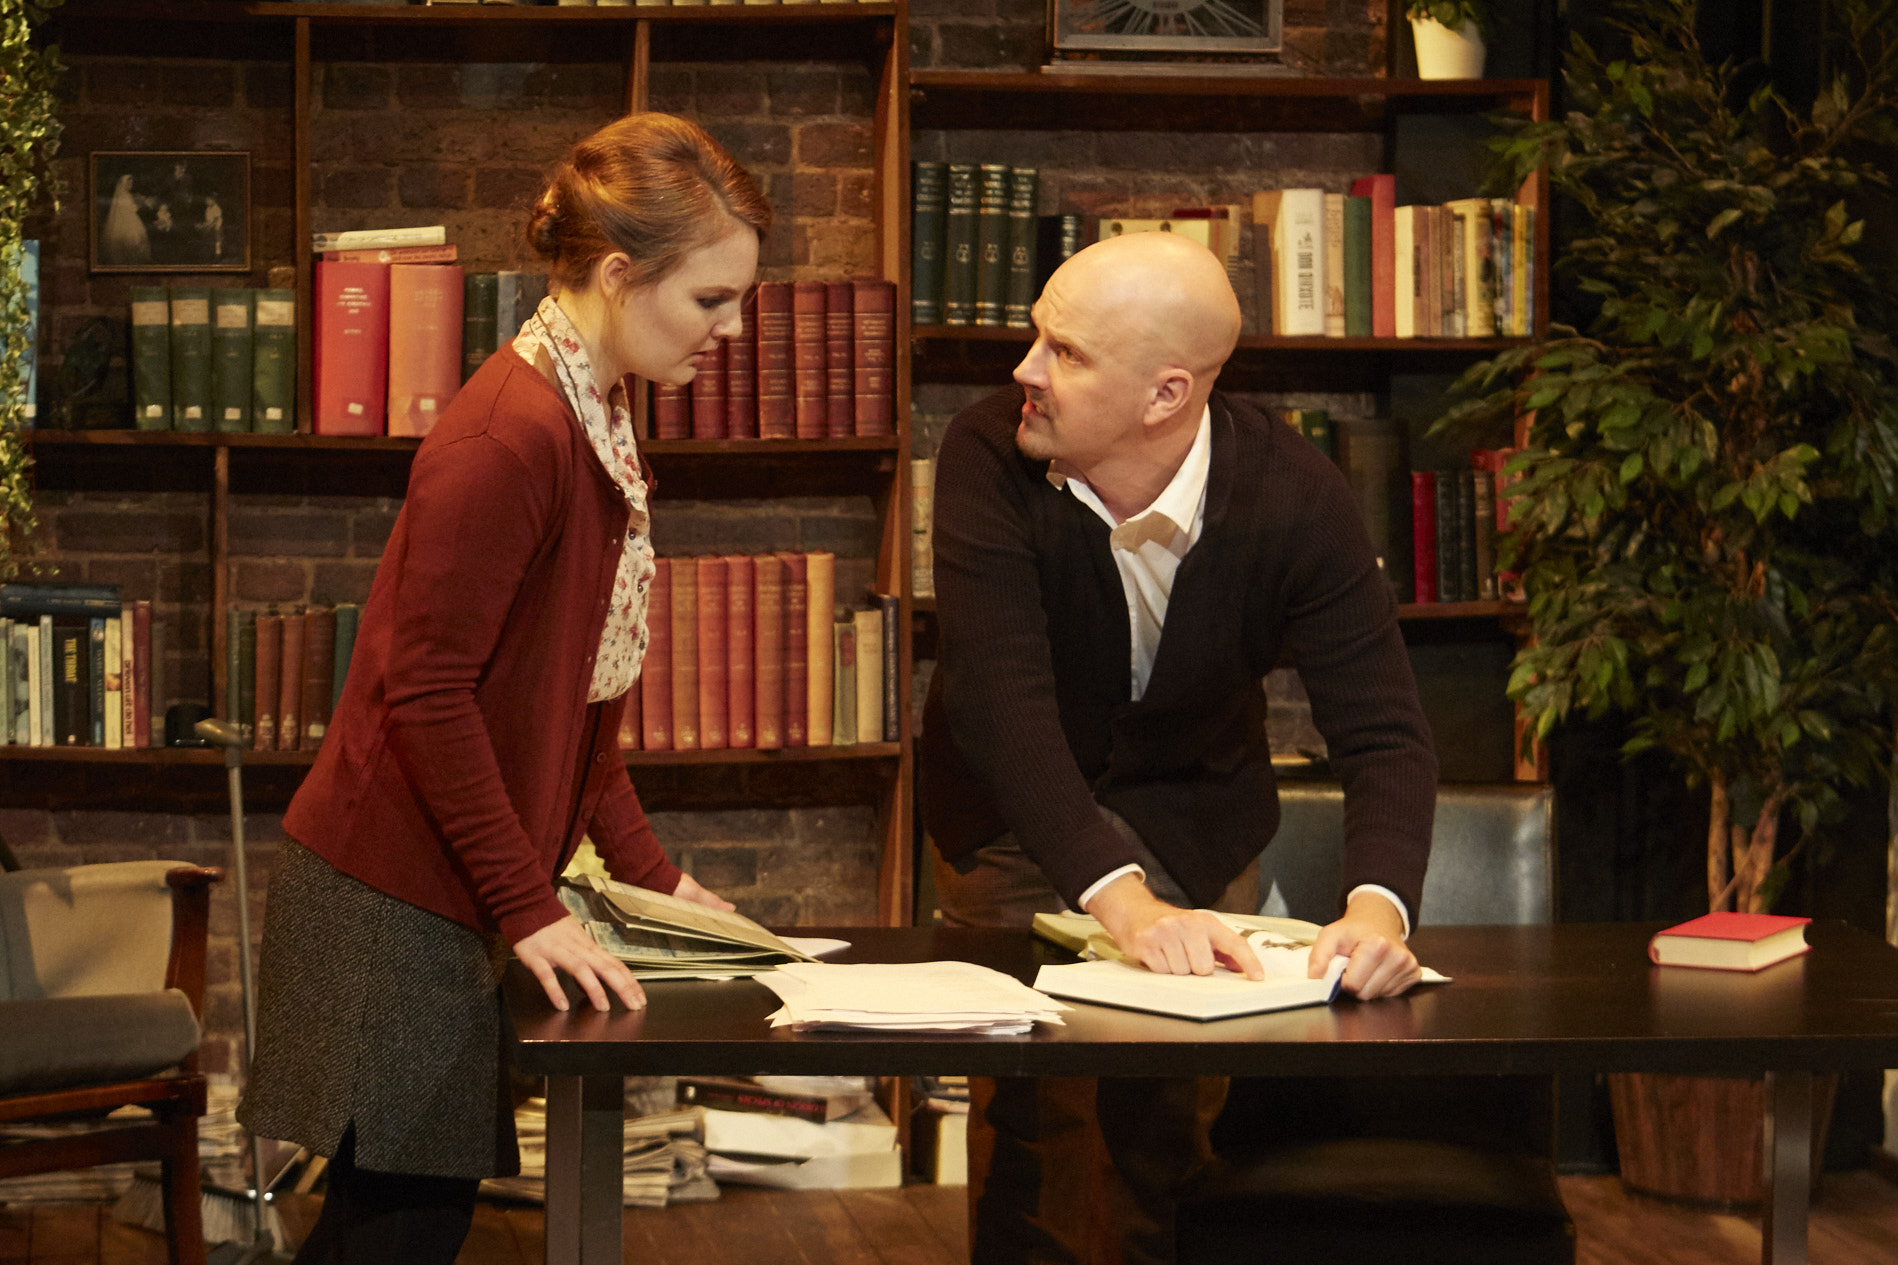 Philip NIghtingale and Becky Black in 'Darwin's Tortoise' picture by Elena Molina.jpg